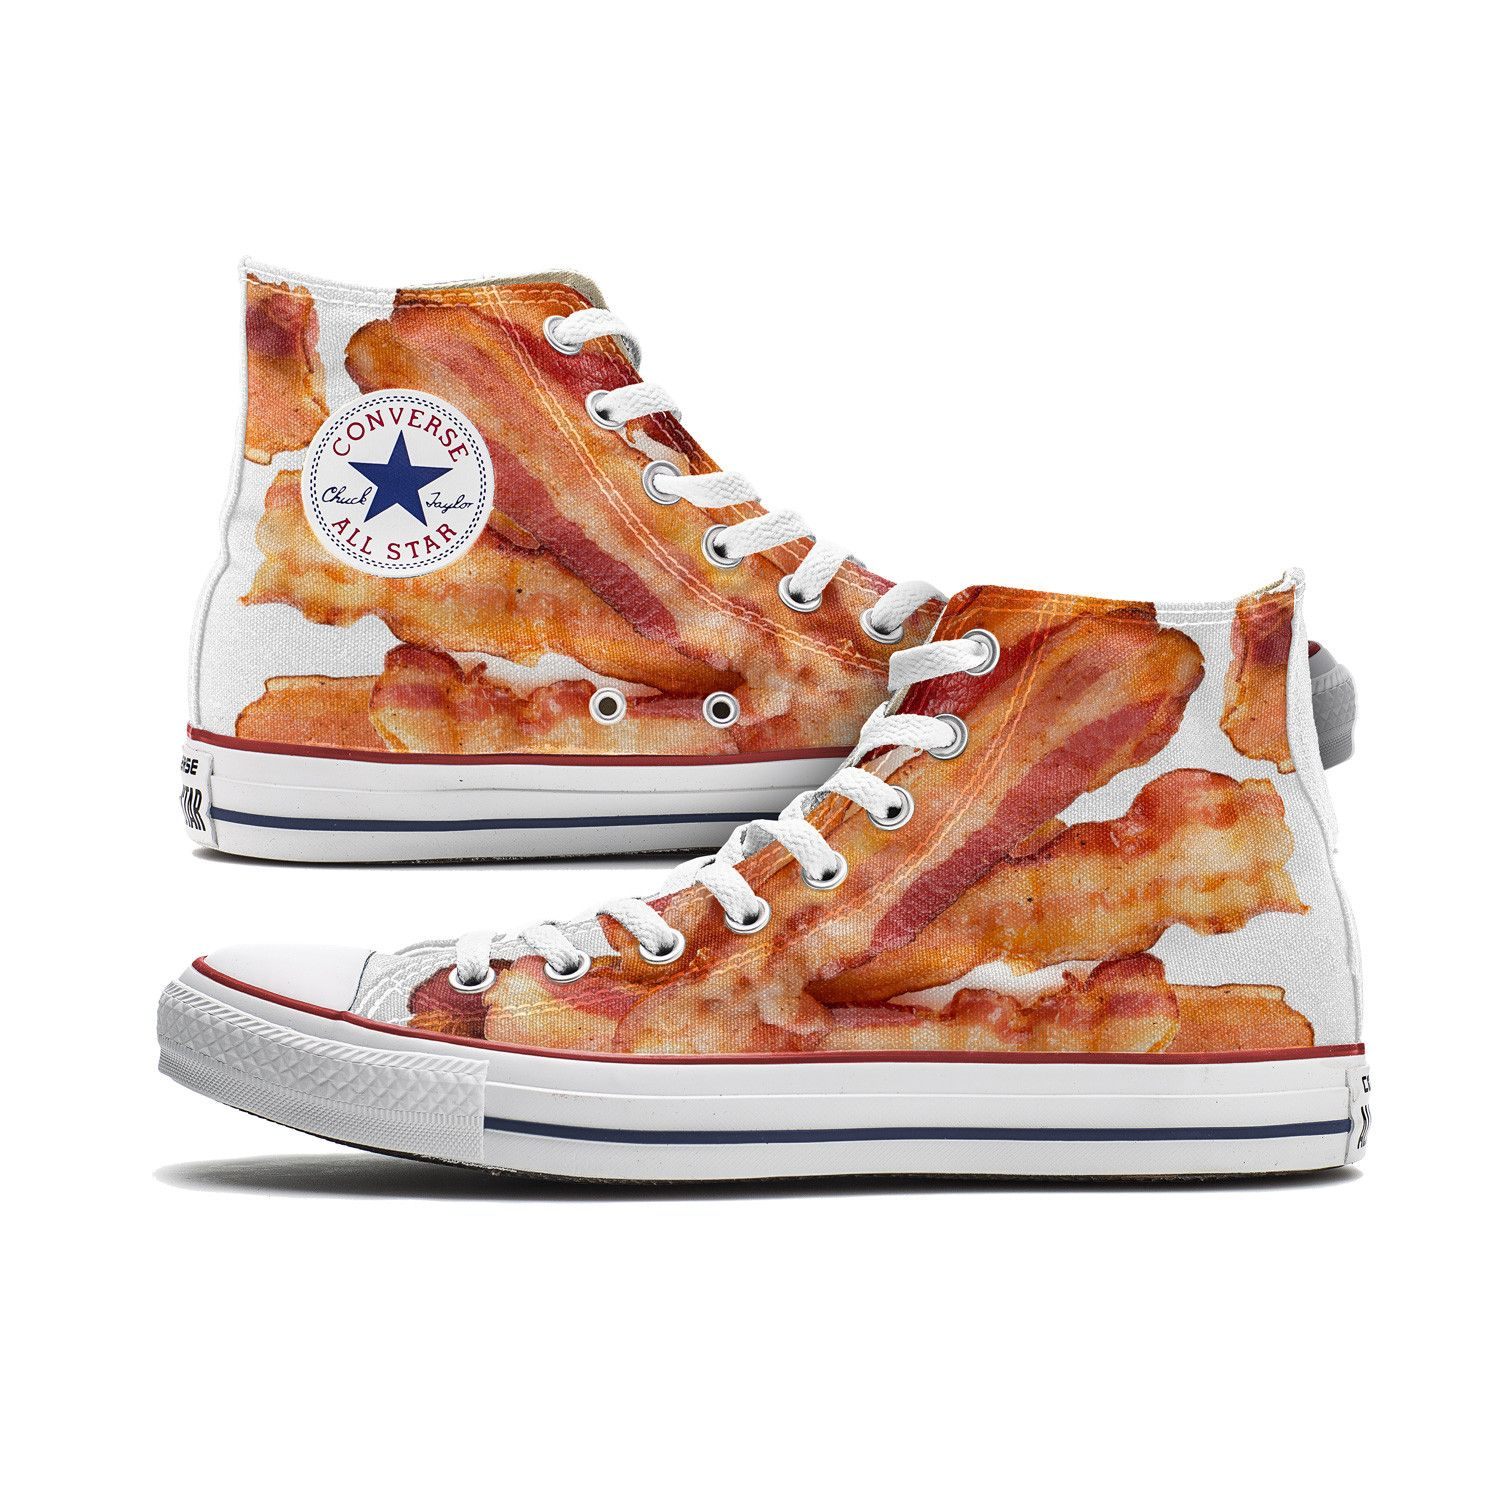 125 Best Converse Chucks images | Converse, Me too shoes